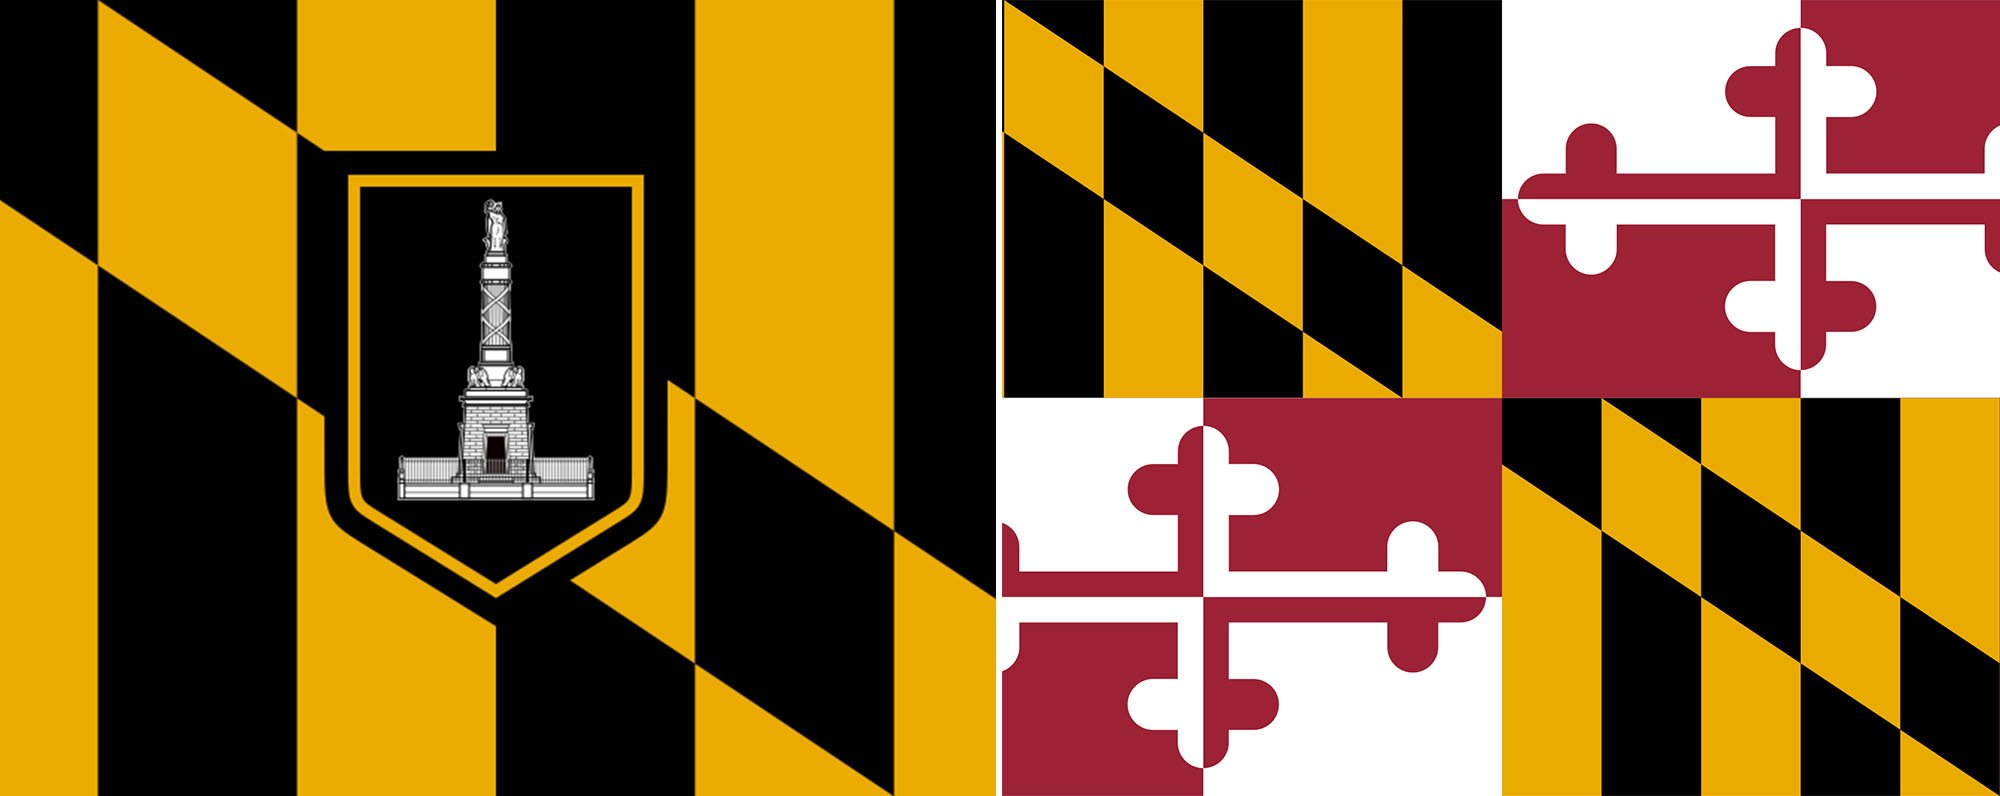 Balt MD Flags Header